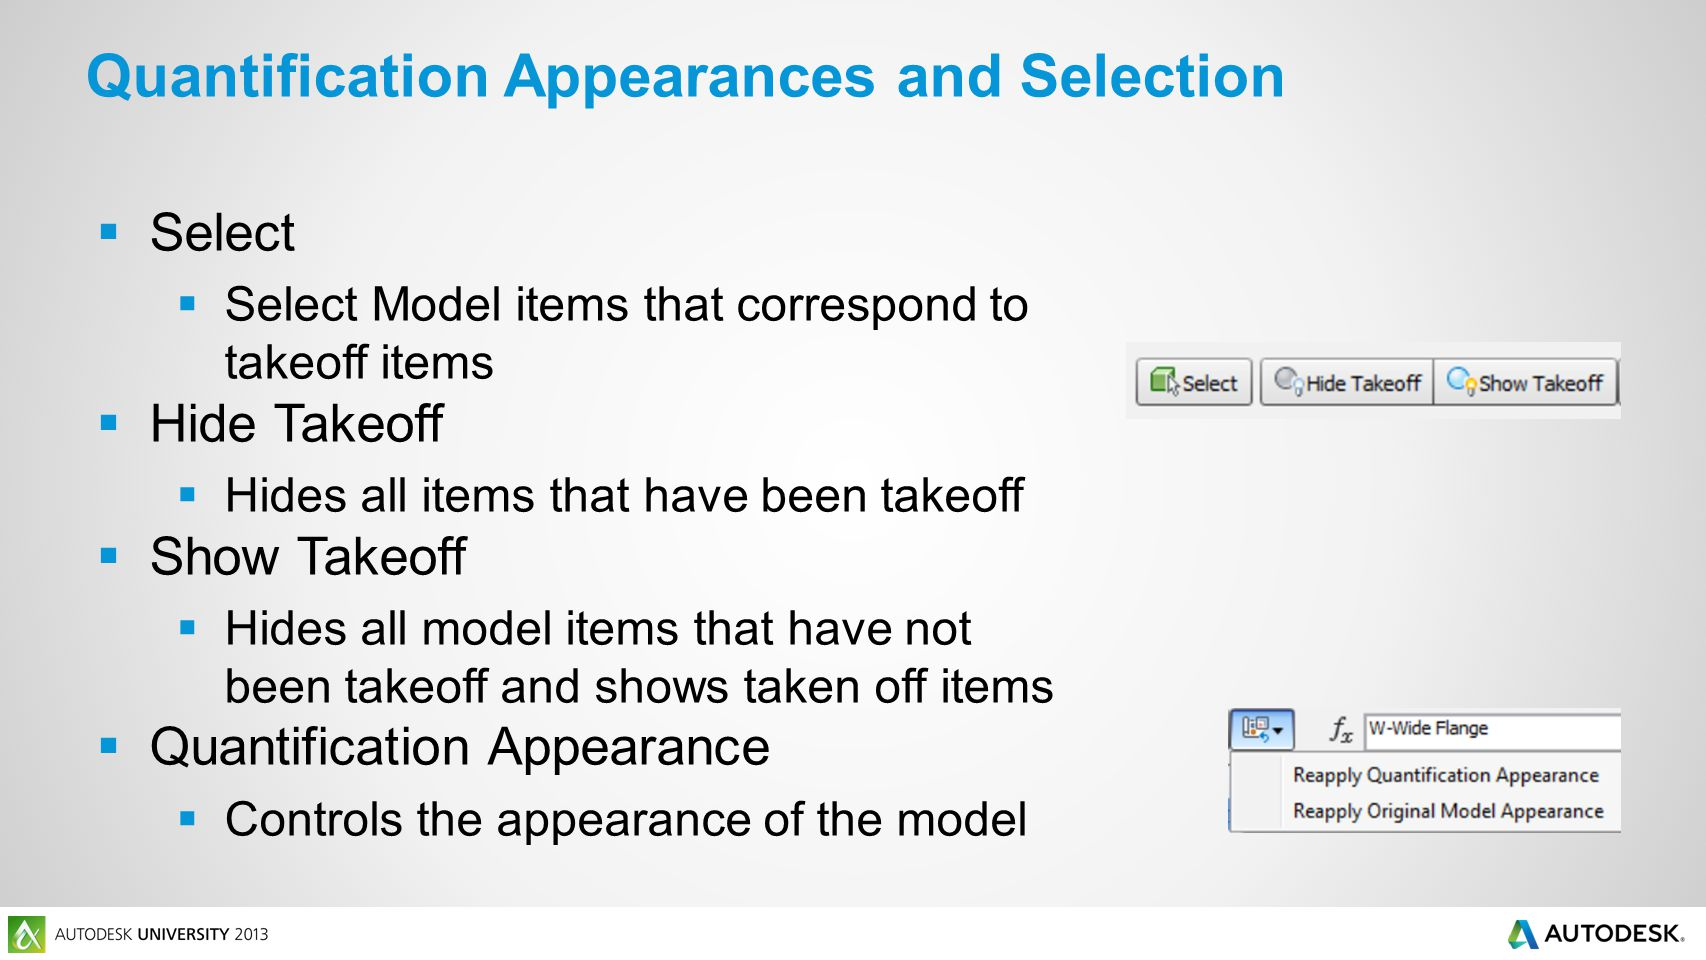  Select  Select Model items that correspond to takeoff items  Hide Takeoff  Hides all items that have been takeoff  Show Takeoff  Hides all model items that have not been takeoff and shows taken off items  Quantification Appearance  Controls the appearance of the model Quantification Appearances and Selection